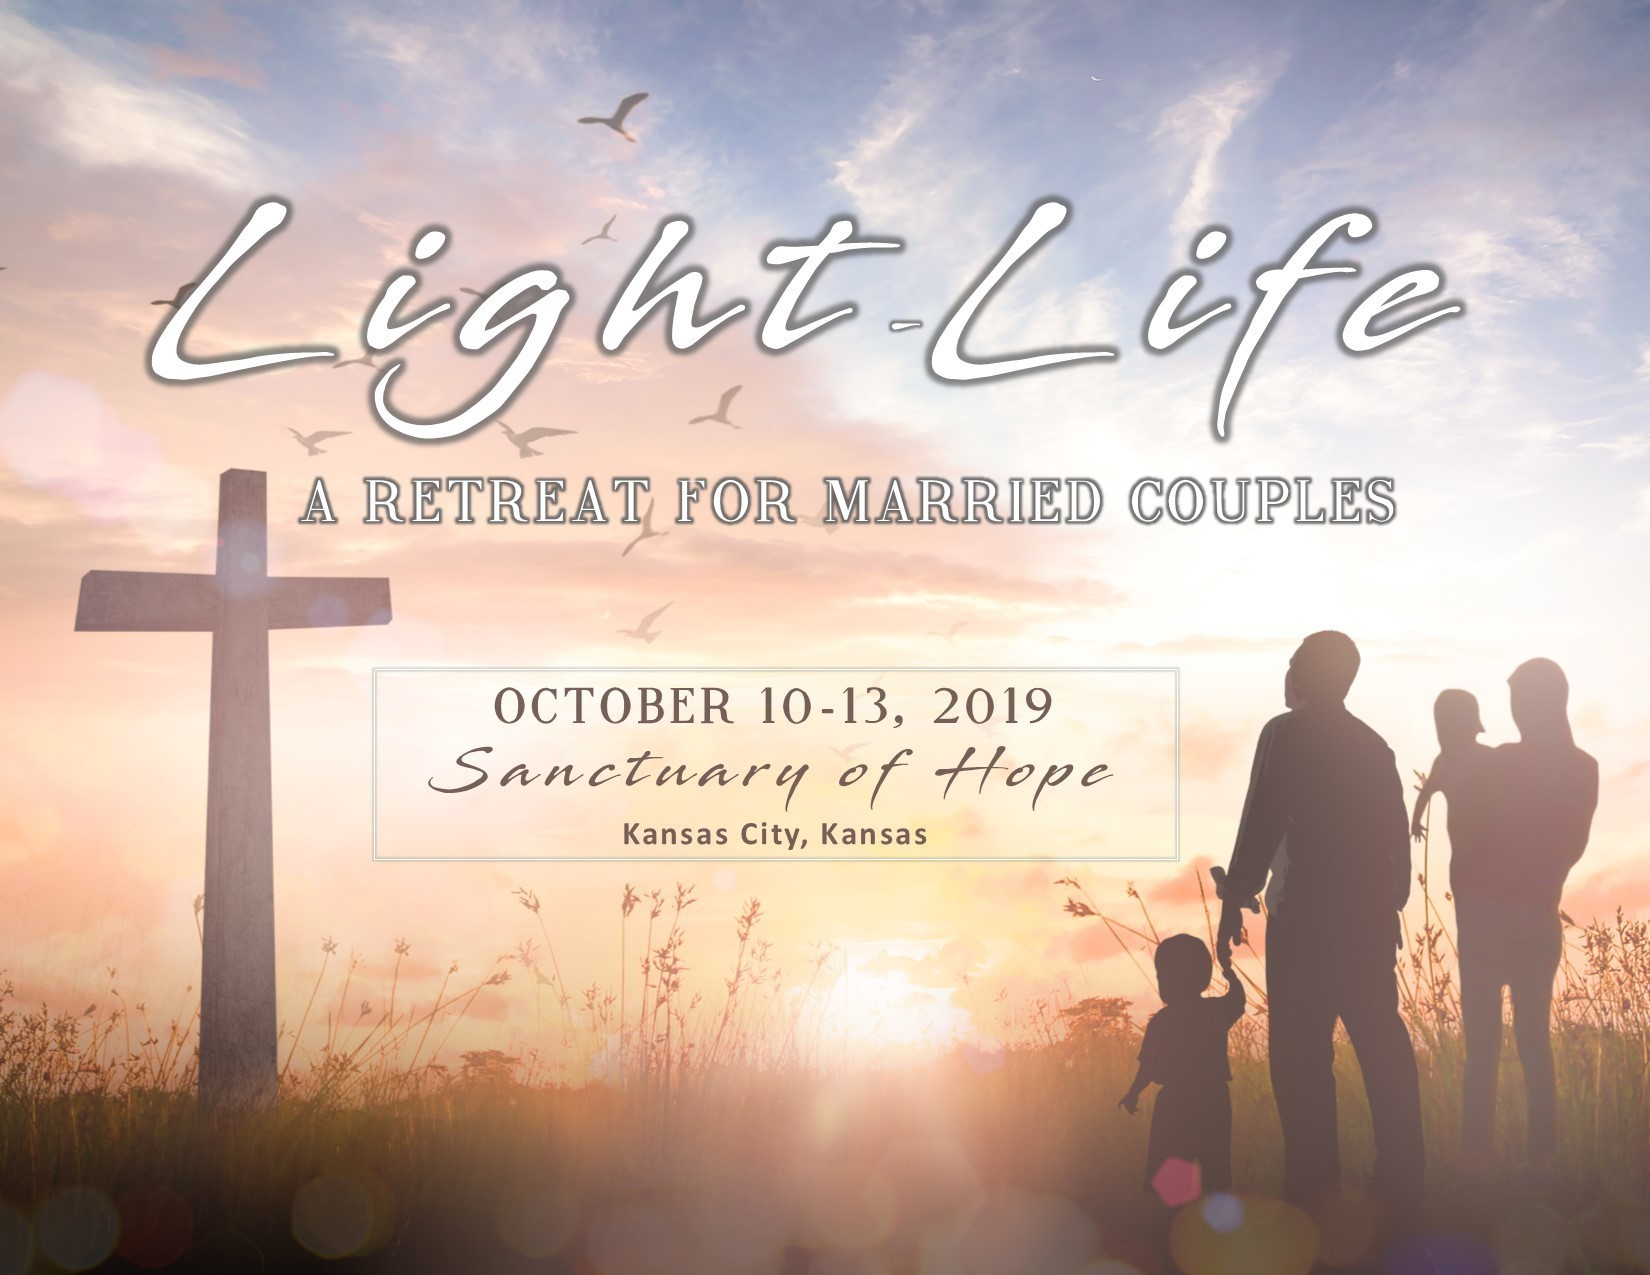 Married Couples Retreat Oct 10-13, 2019